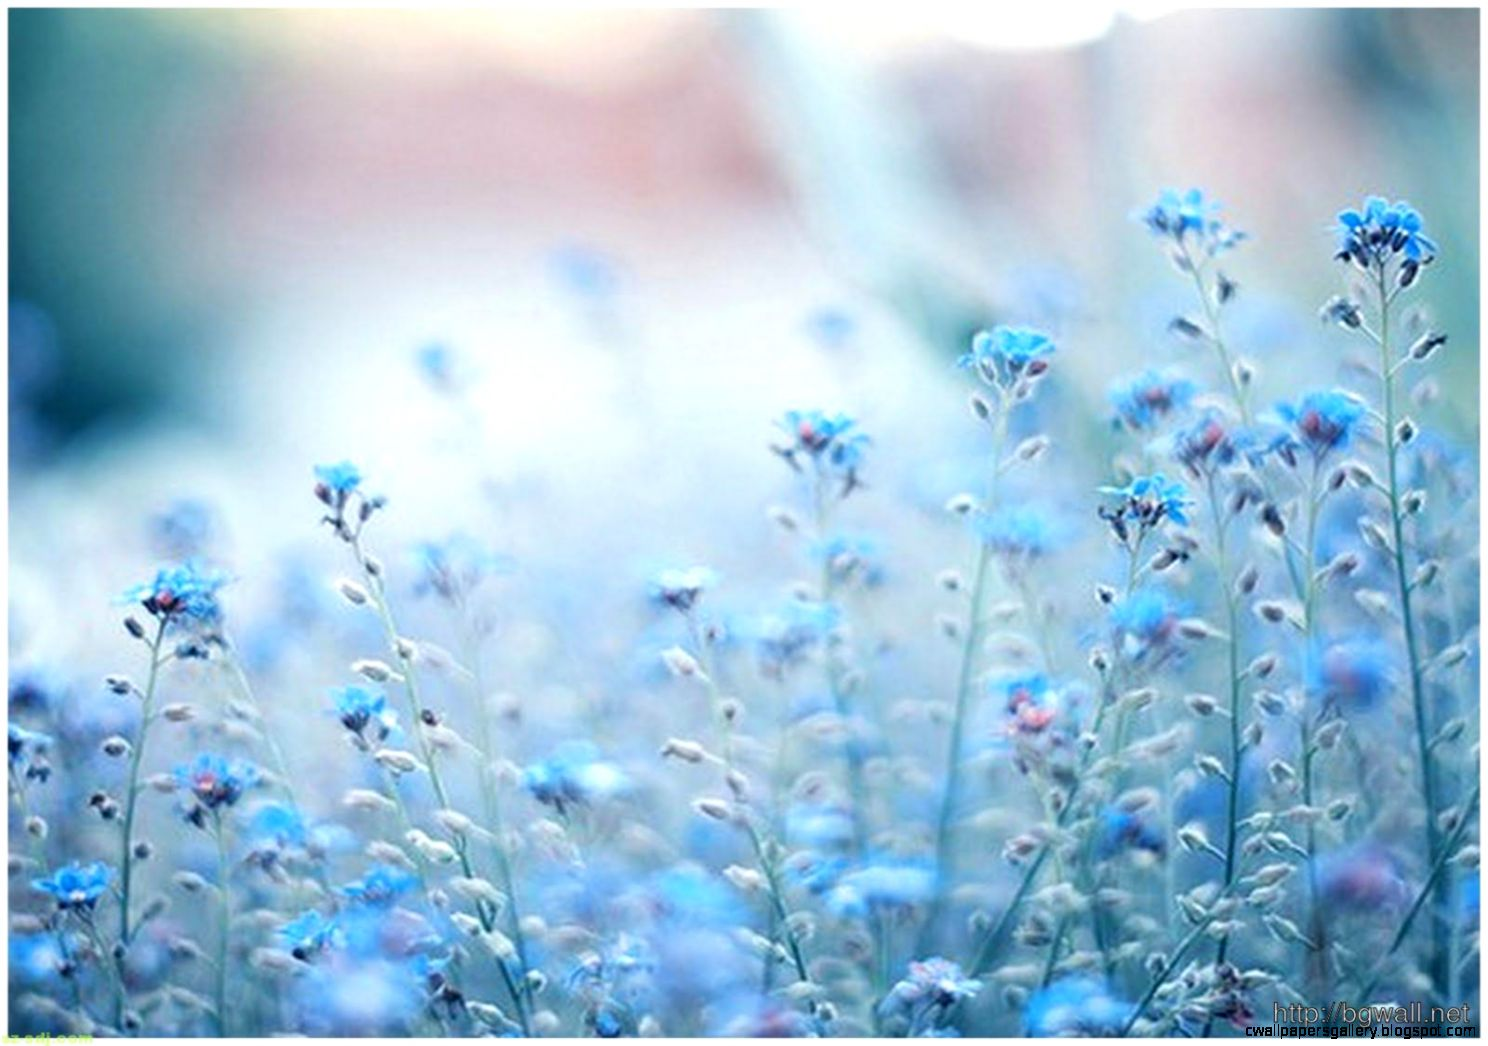 Blue Flowers Tumblr Wallpaper – Background Wallpaper HD